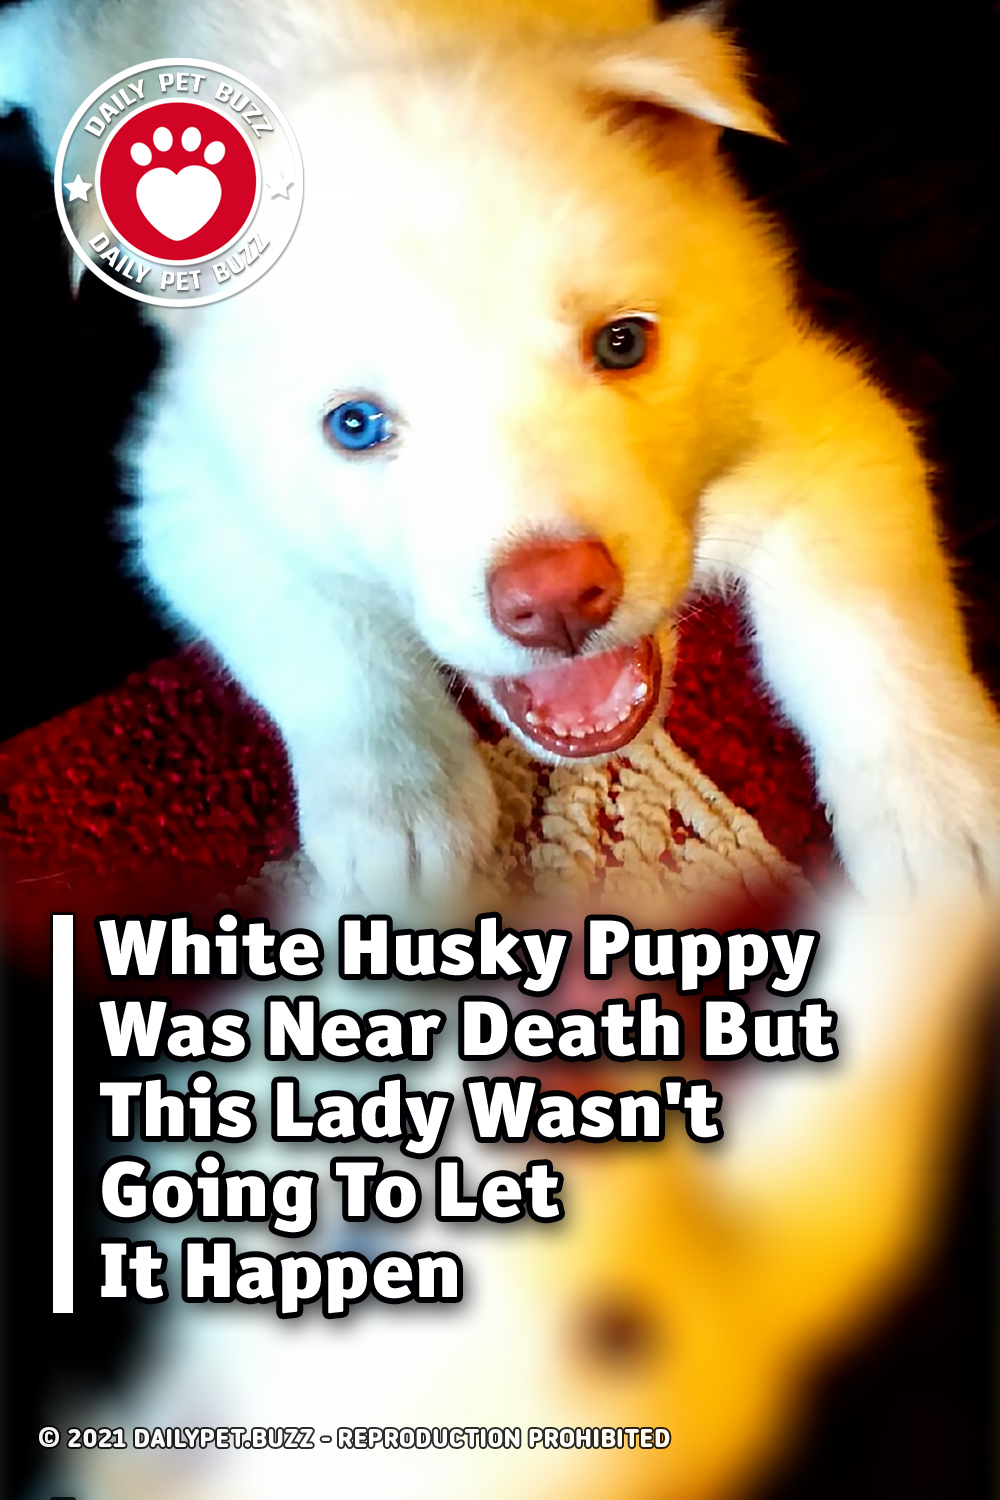 White Husky Puppy Was Near Death But This Lady Wasn\'t Going To Let It Happen